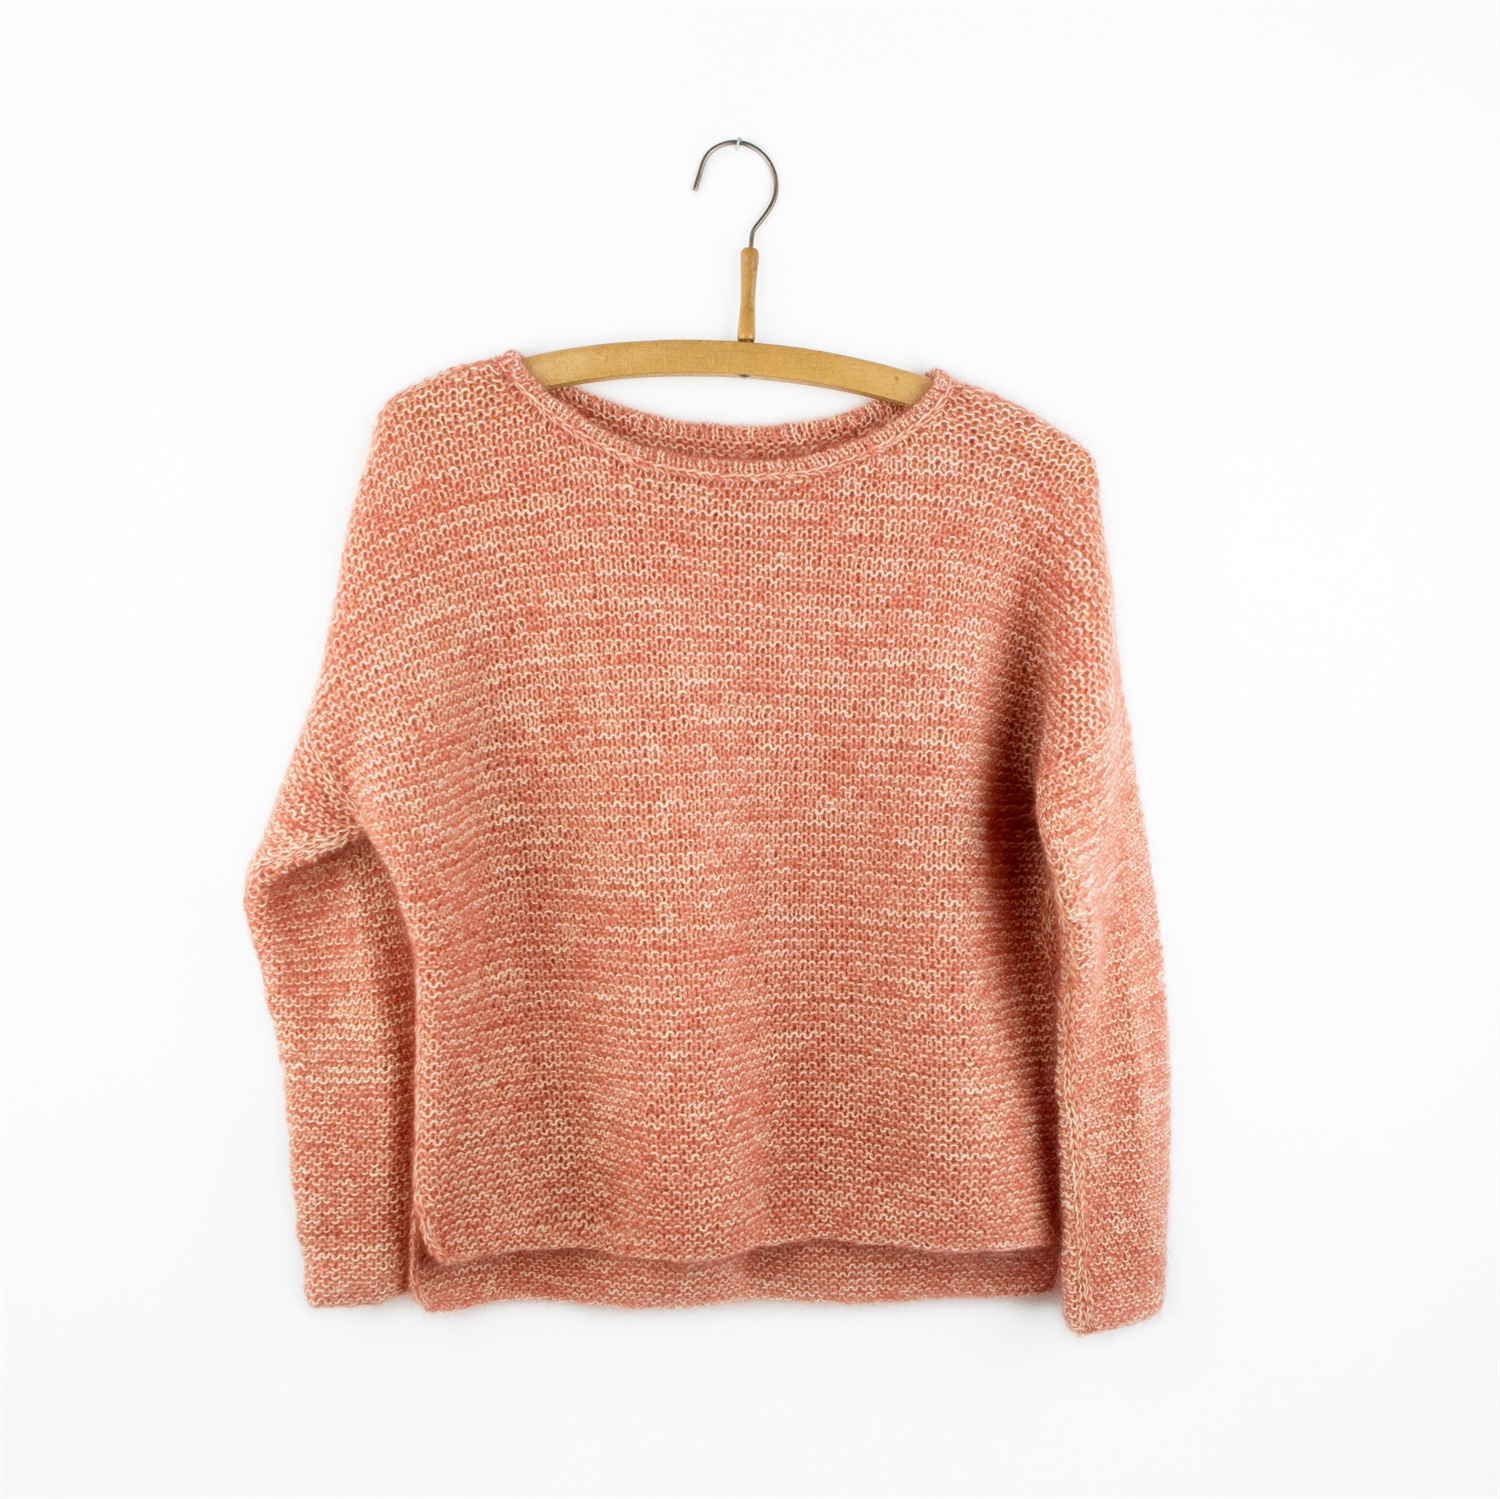 Kashmir af Helga Isager | Fashion, Men sweater, Knitting